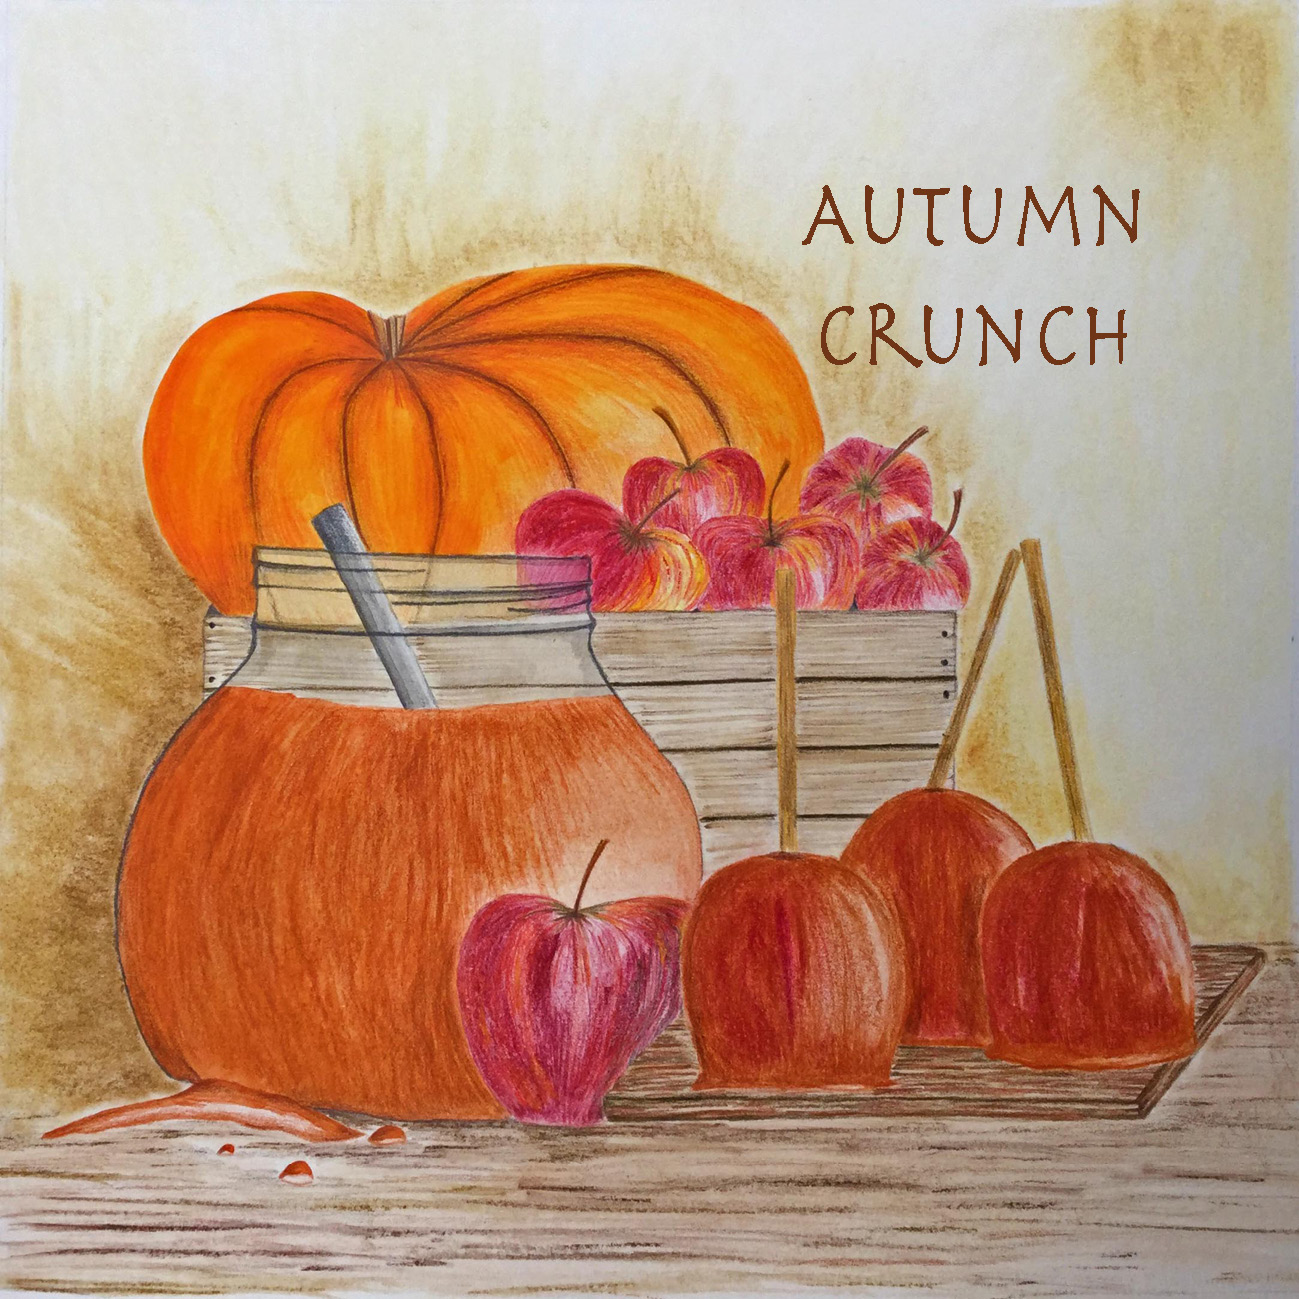 Autumn crunch 1.jpg